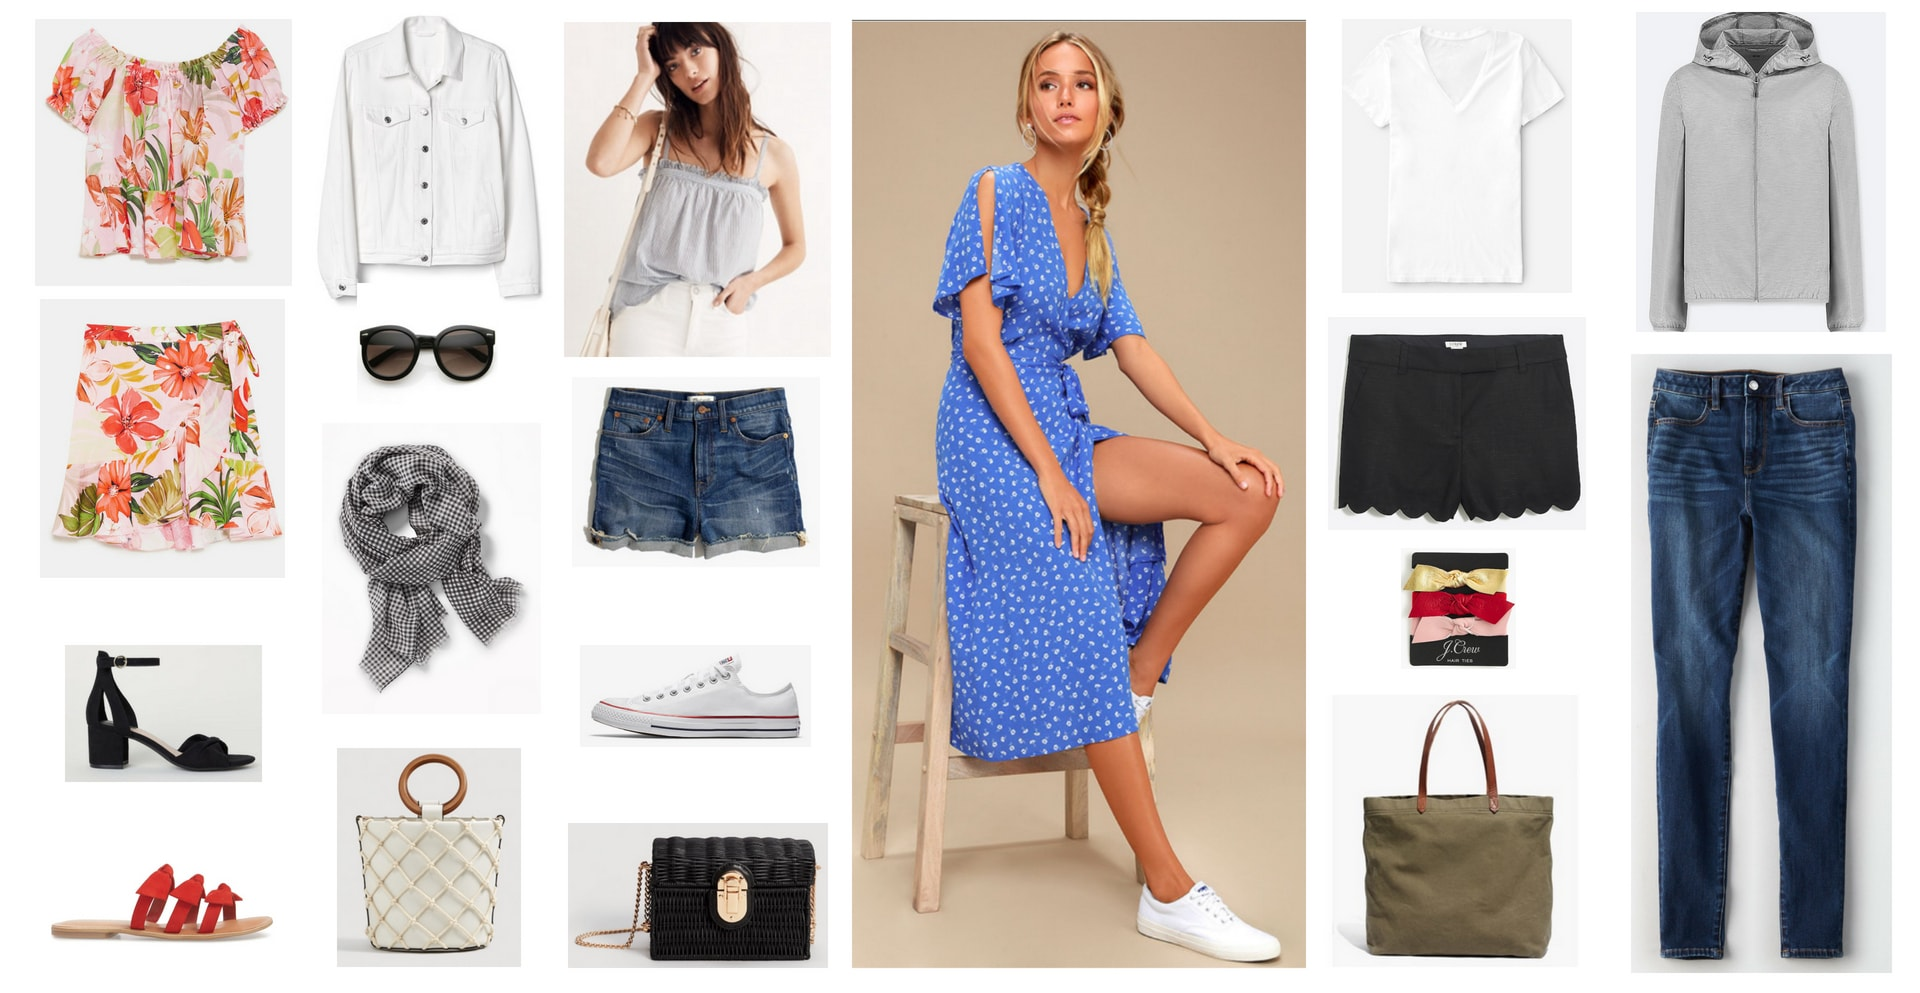 Vacation capsule wardrobe for NYC, SF, and Las Vegas: Two piece floral set, white denim jacket, blue tank top, distressed denim shorts, sunglasses, red sandals, white Converse sneakers, houndstooth scarf, bucket bag, crossbody bag in black, black heels, blue open shoulder midi dress in blue polka dot, white v-neck tee, black scalloped shorts, hair ties, waterproof tote bag, gray zip up hoodie, skinny jeans